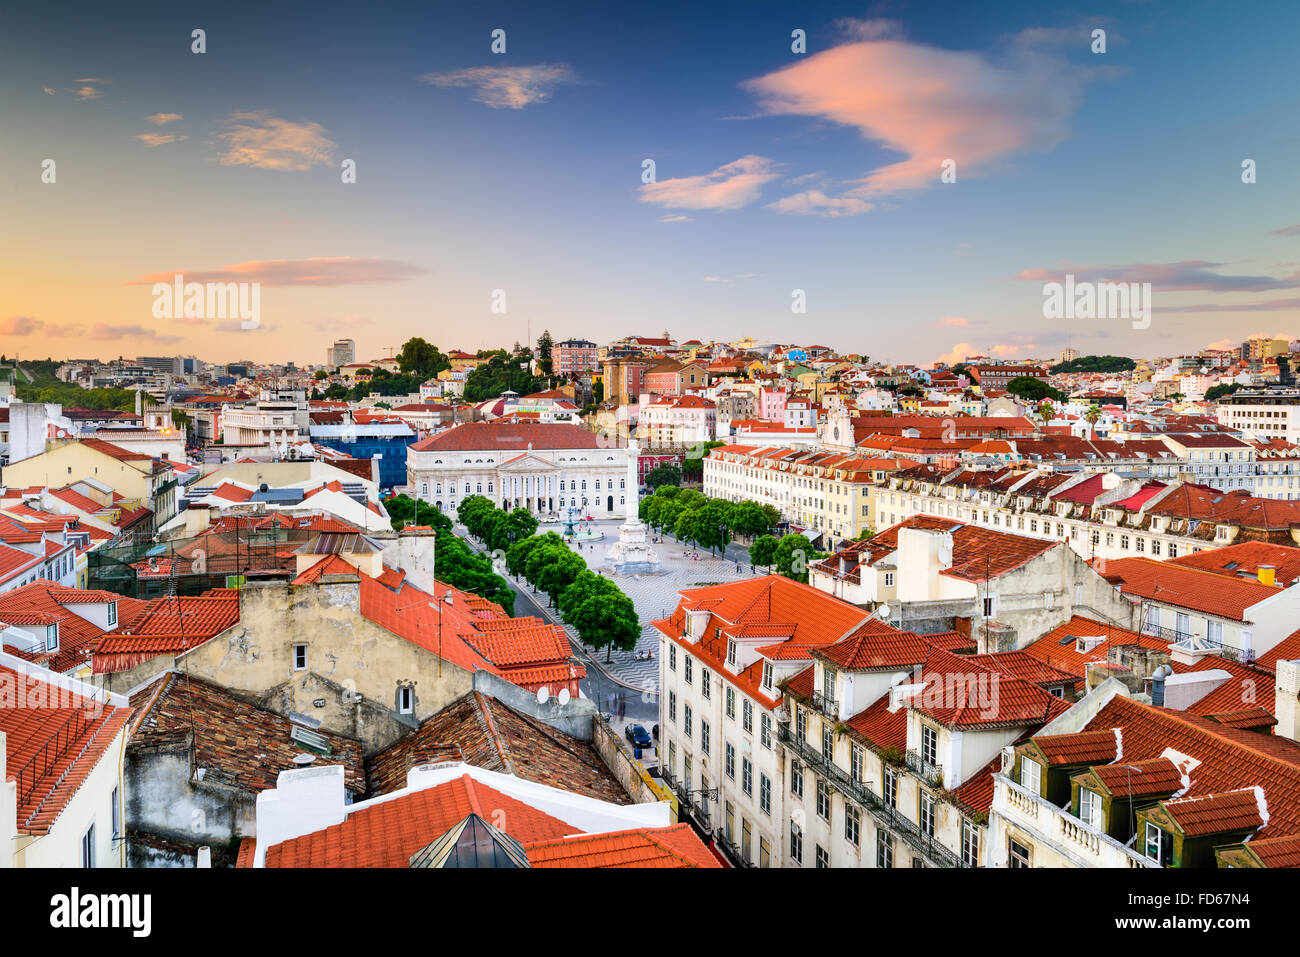 Lisbon, Portugal skyline view over Rossio Square. - Stock Image